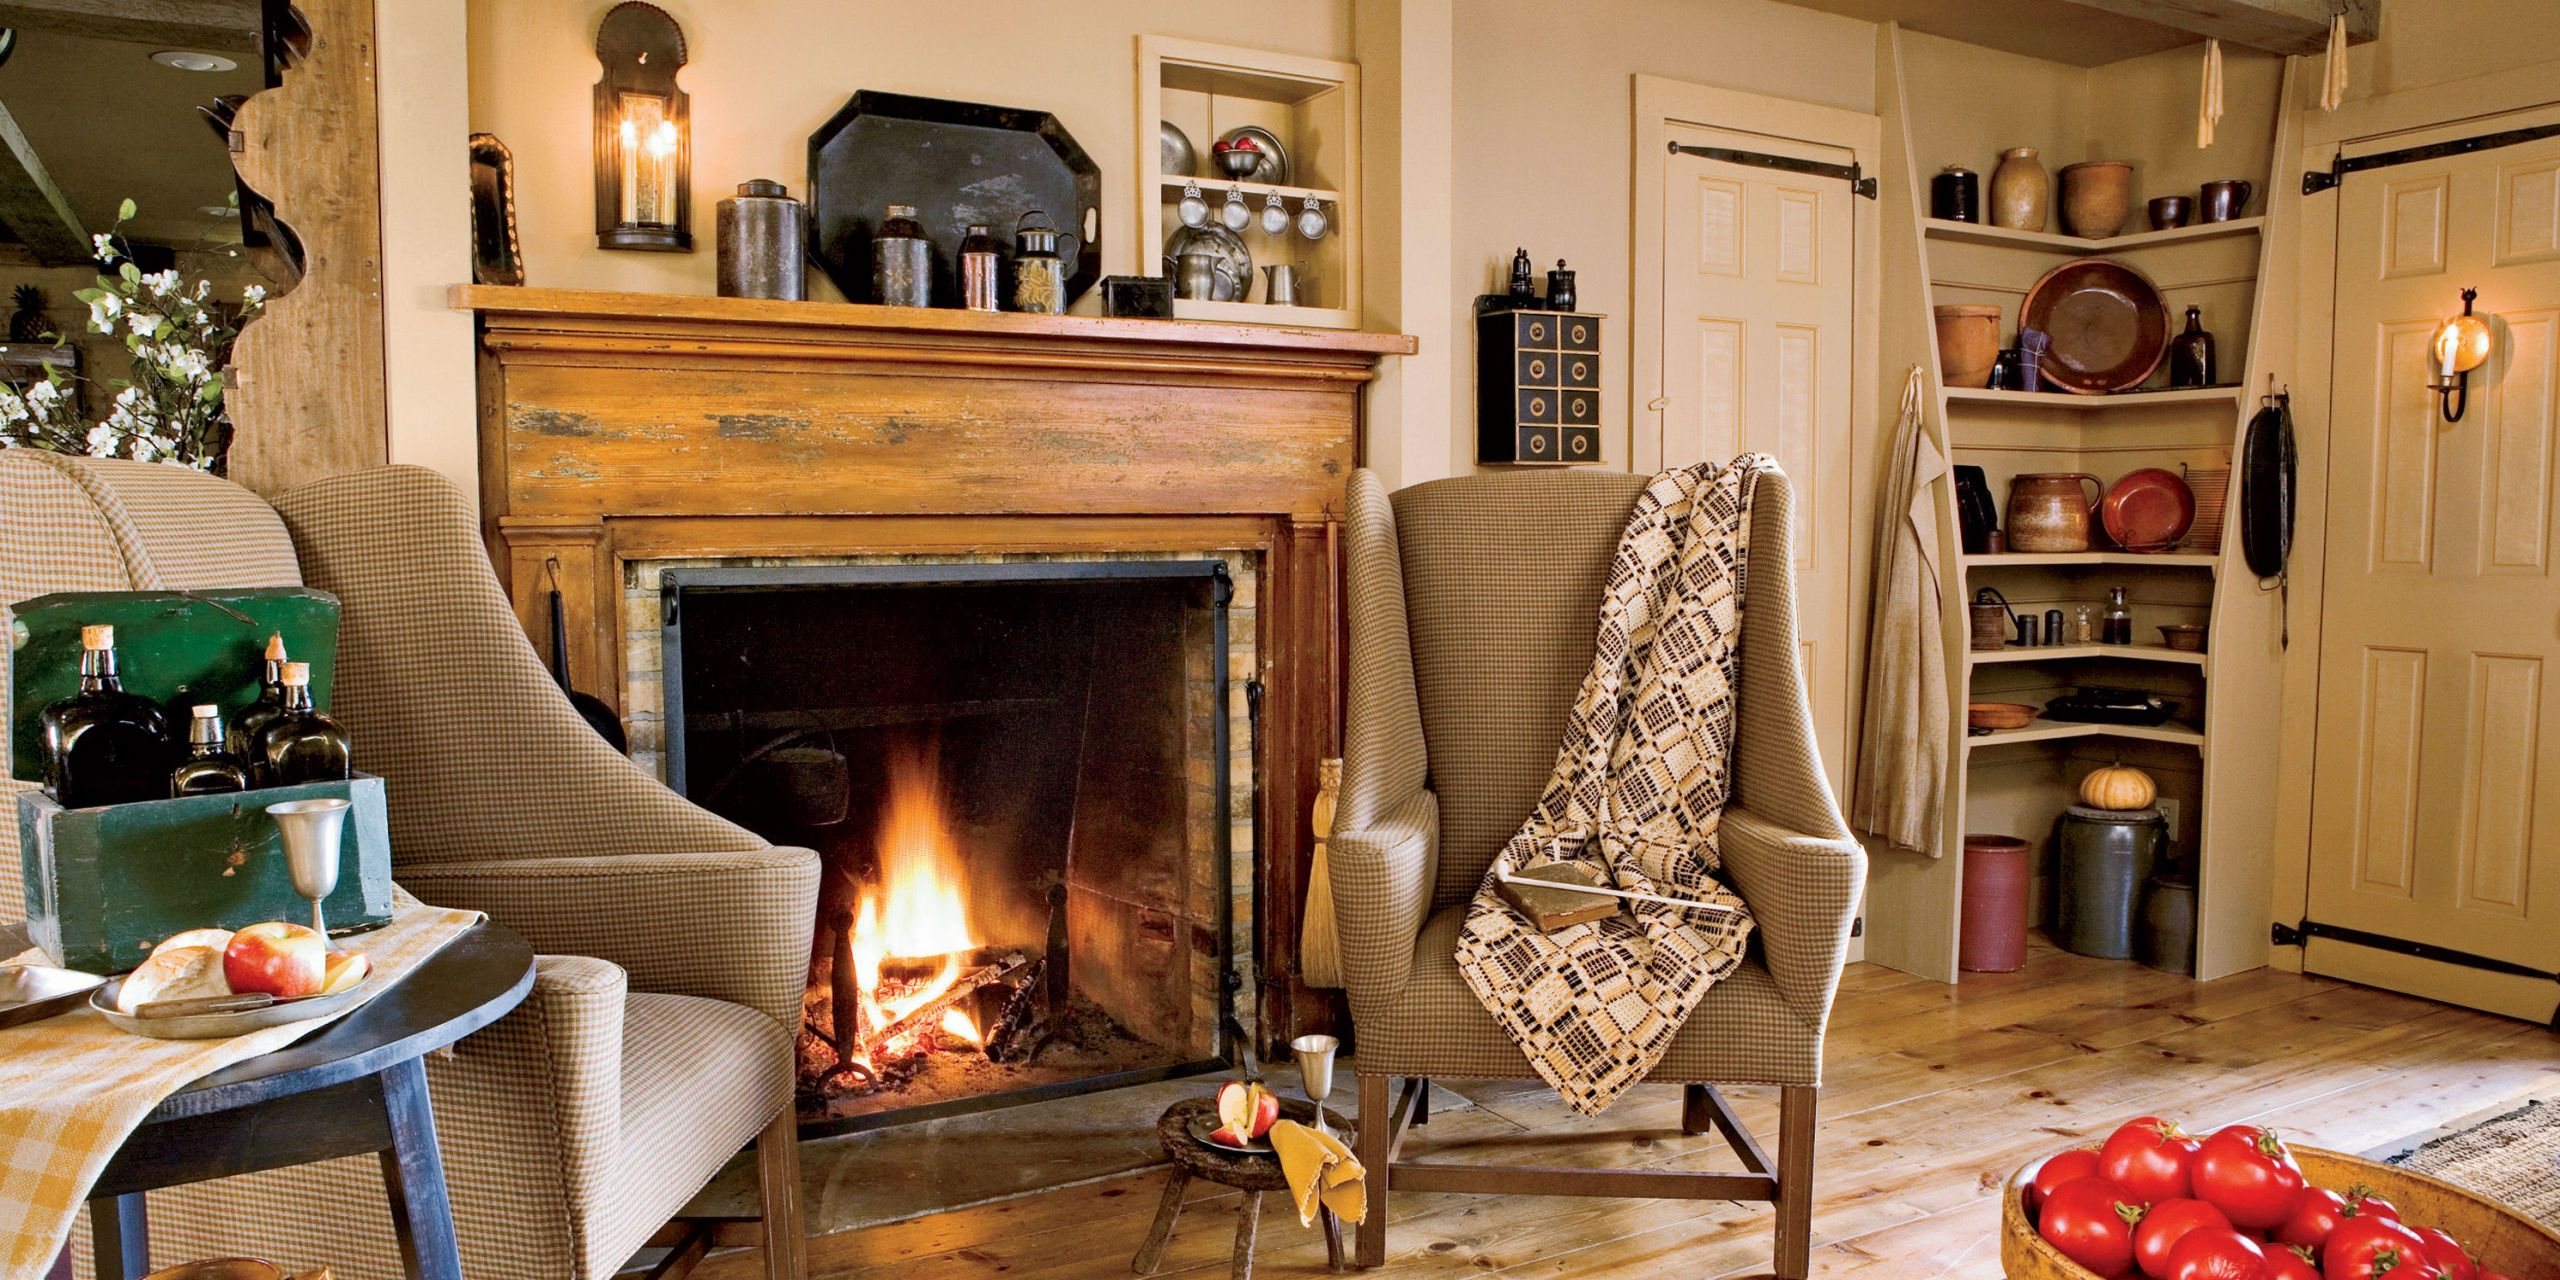 Stone slate wood and more Get inspired to re-do your living room with our favorite fireplace designs and mantel ideas. & 40+ Fireplace Design Ideas - Fireplace Mantel Decorating Ideas